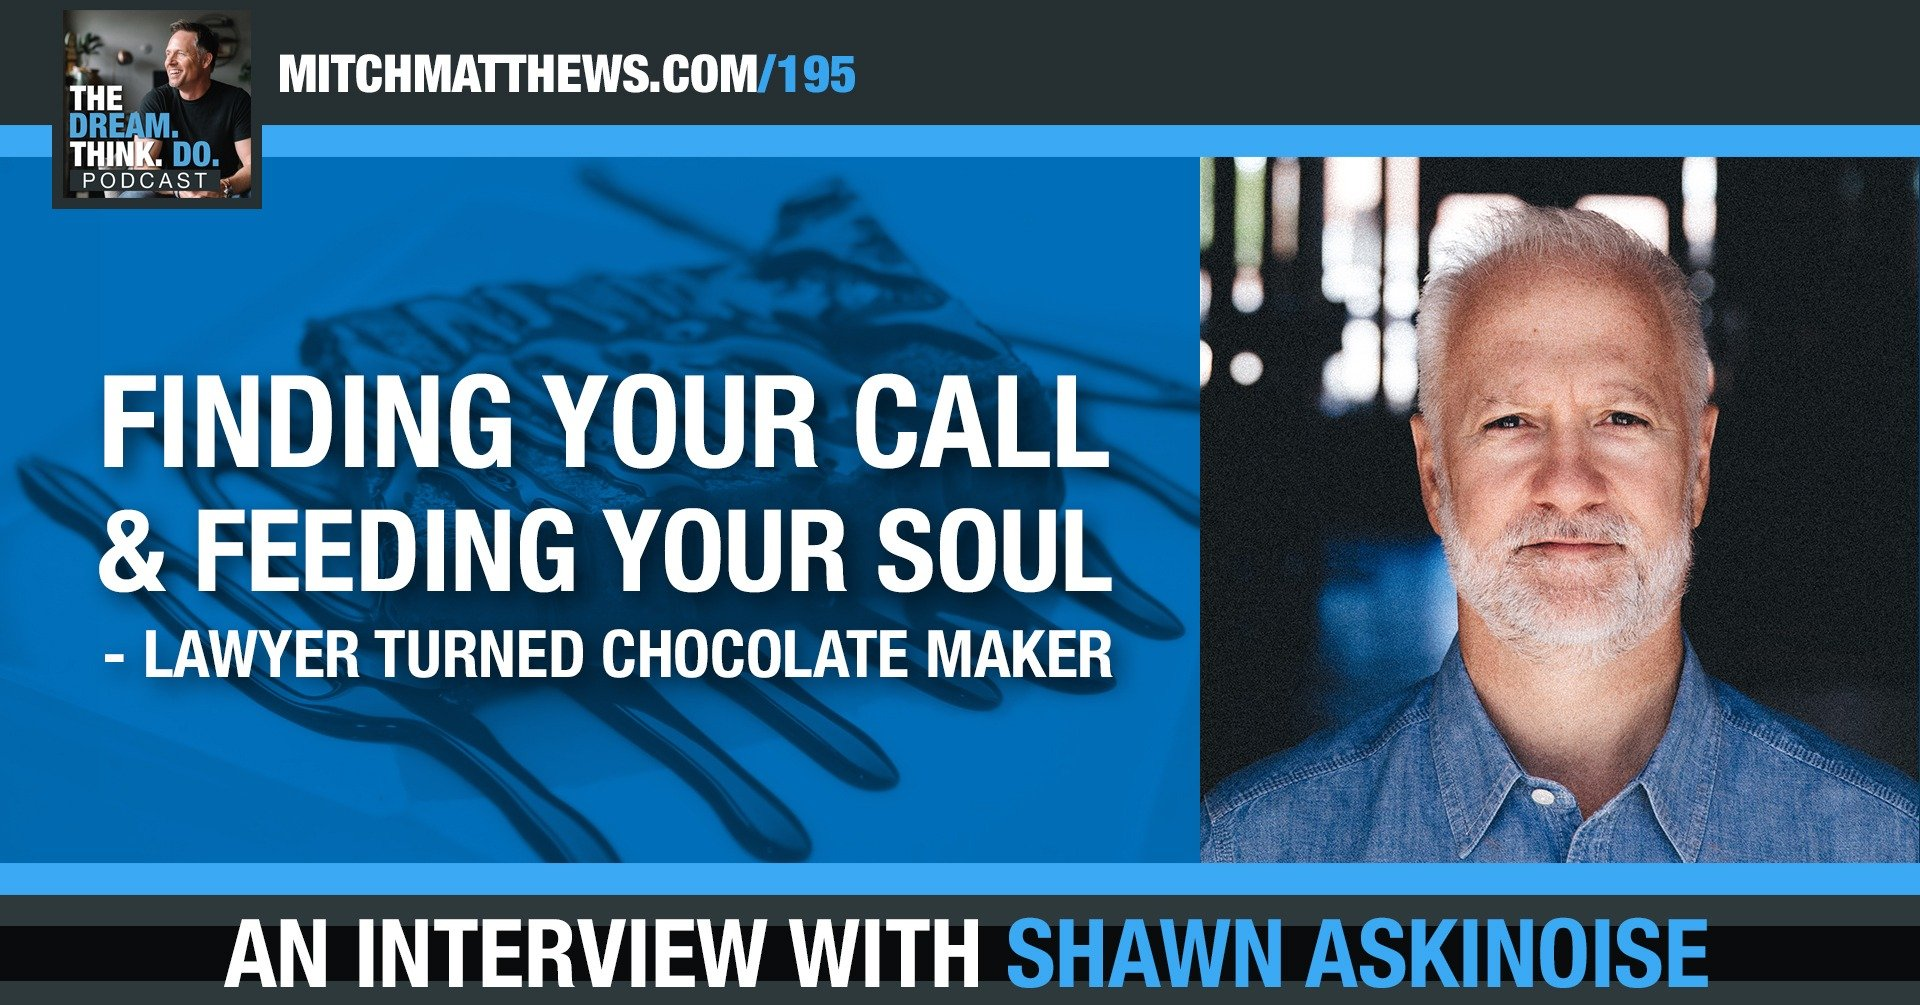 Finding Your Call & Feeding Your Soul - Lawyer Turned Chocolatier, with Shawn Askinosie